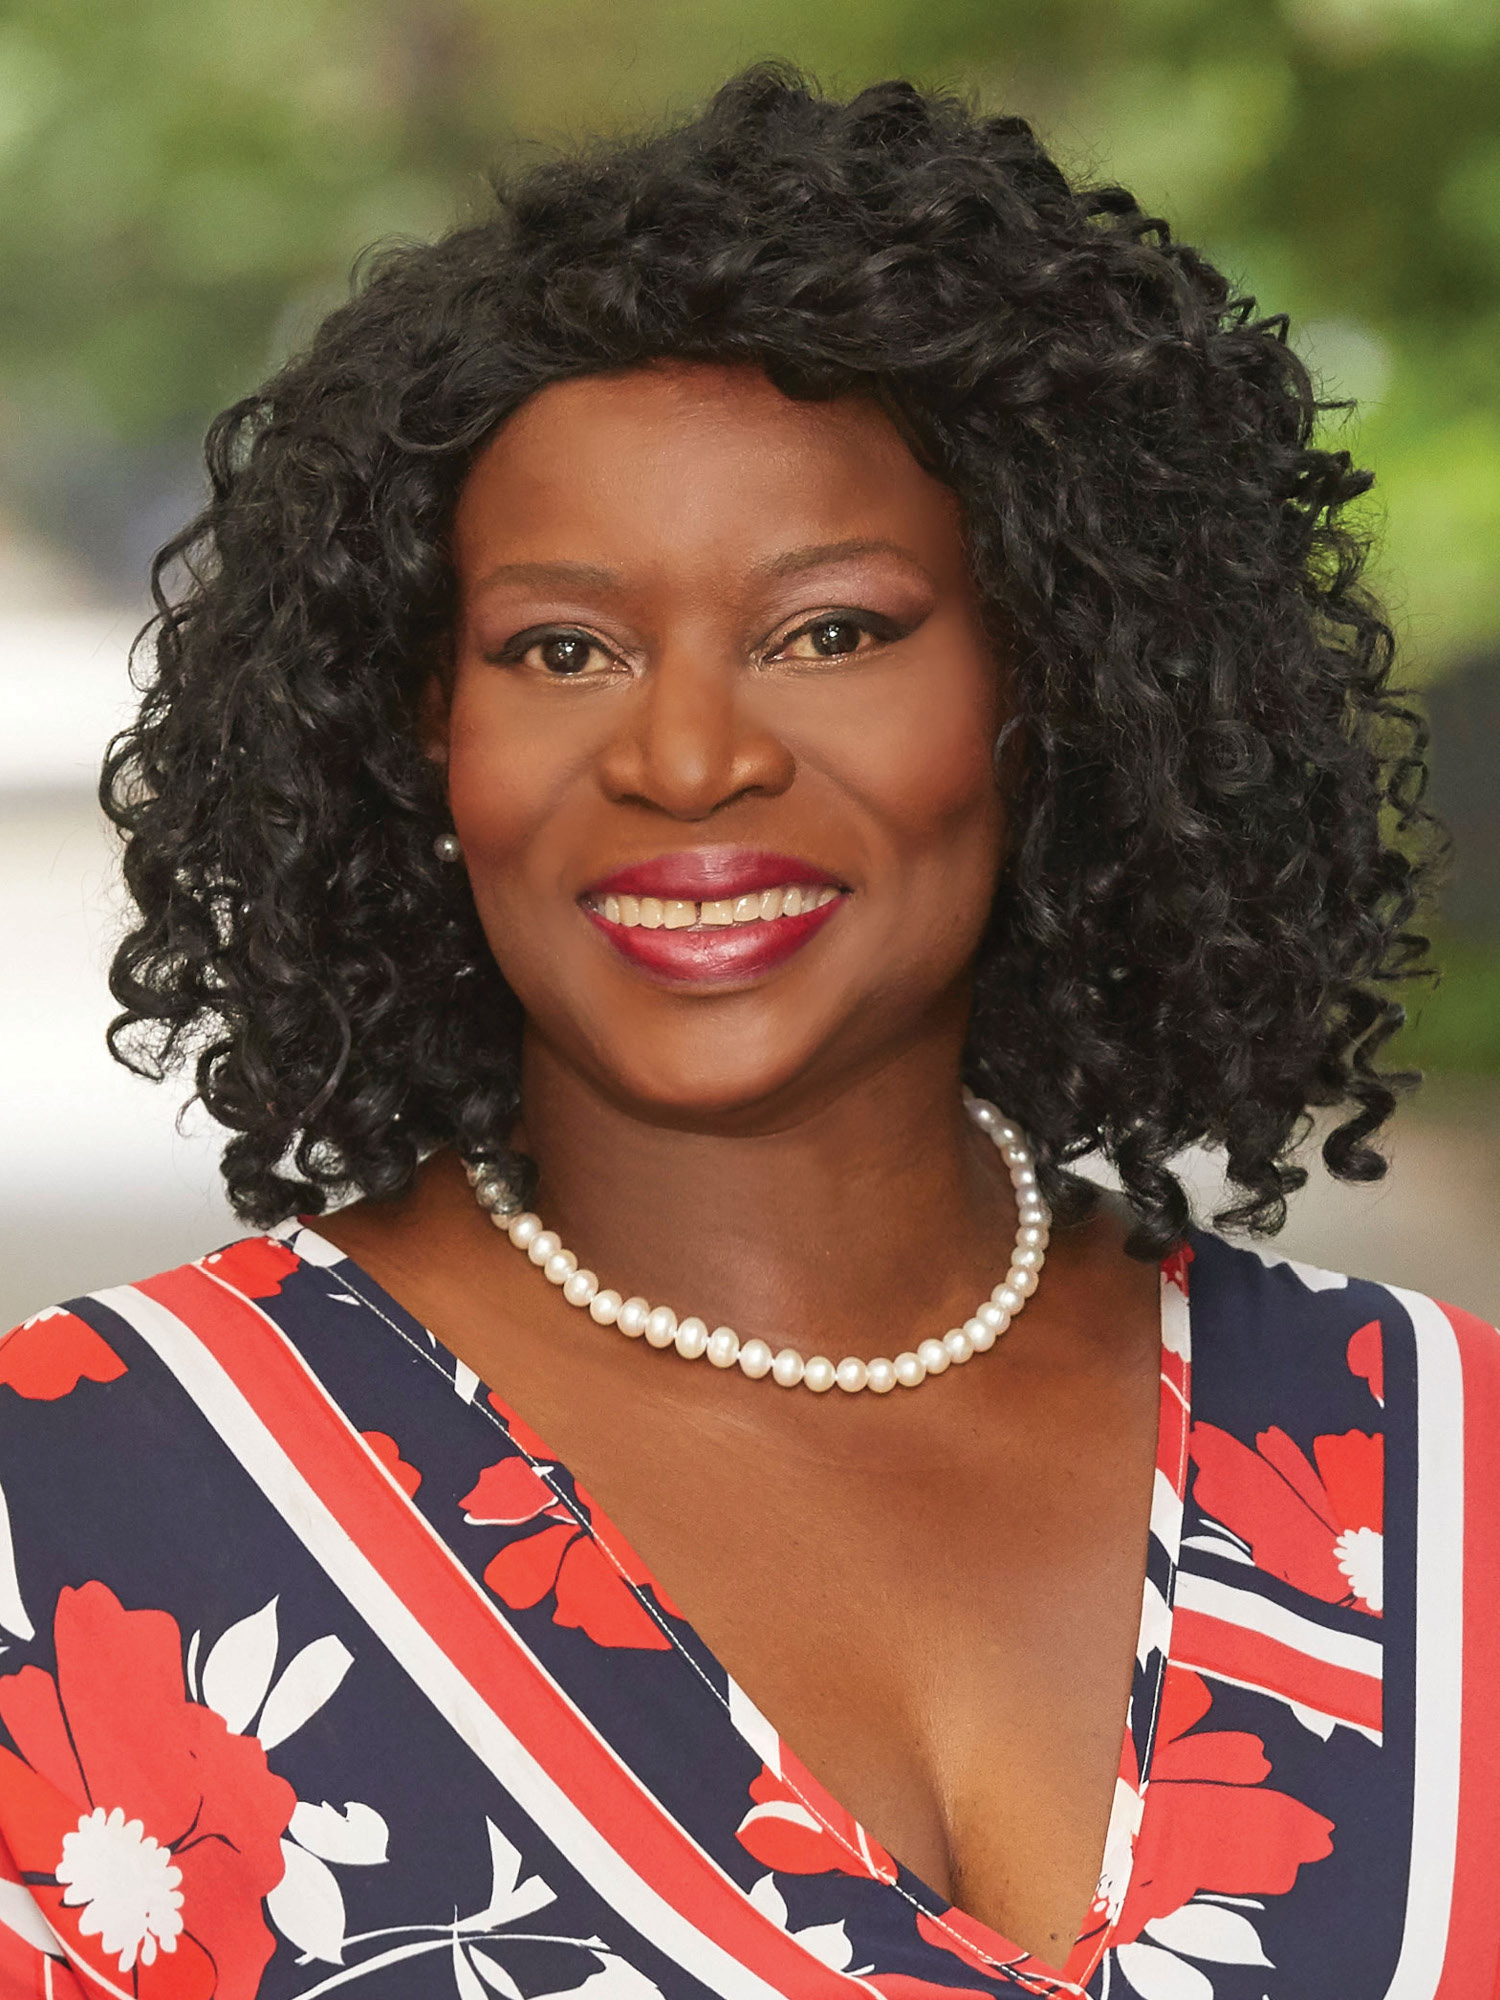 Sharon Burroughs-Clarke, a top realtor in New York City for Corcoran, a real estate firm in Fort Greene.